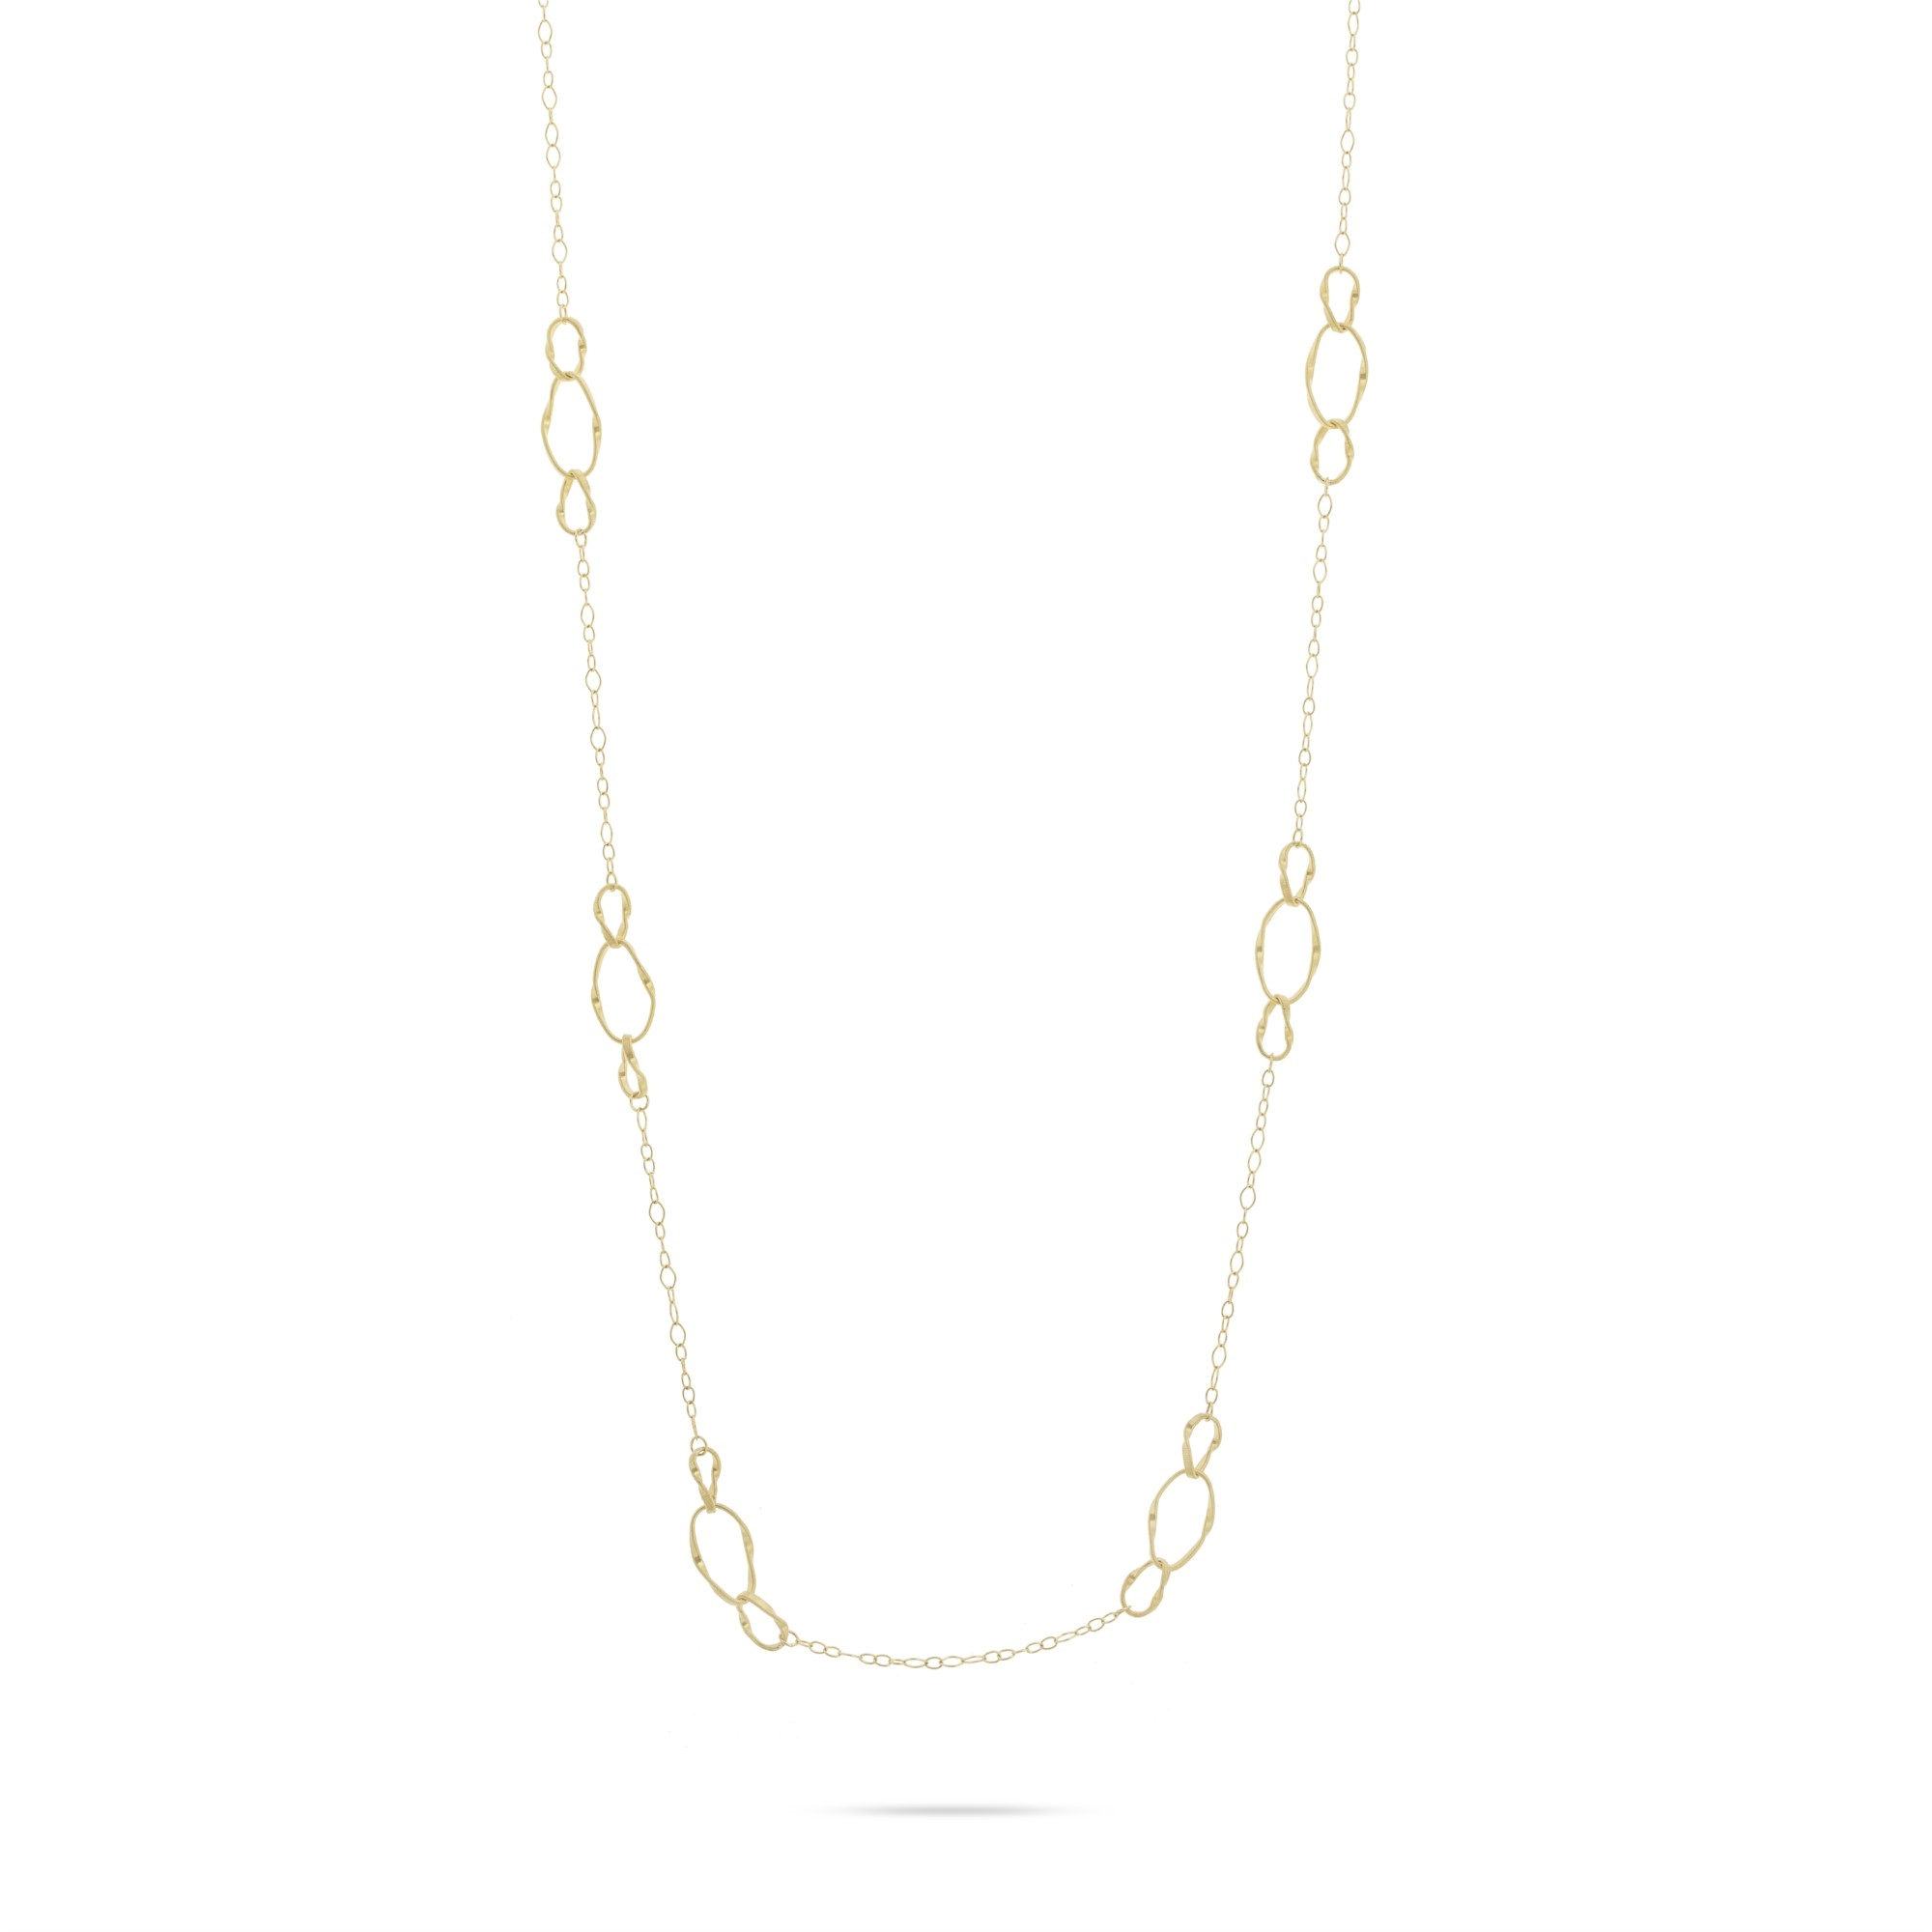 Marco Bicego 18K Yellow Gold    Gold Necklace CG793 Y